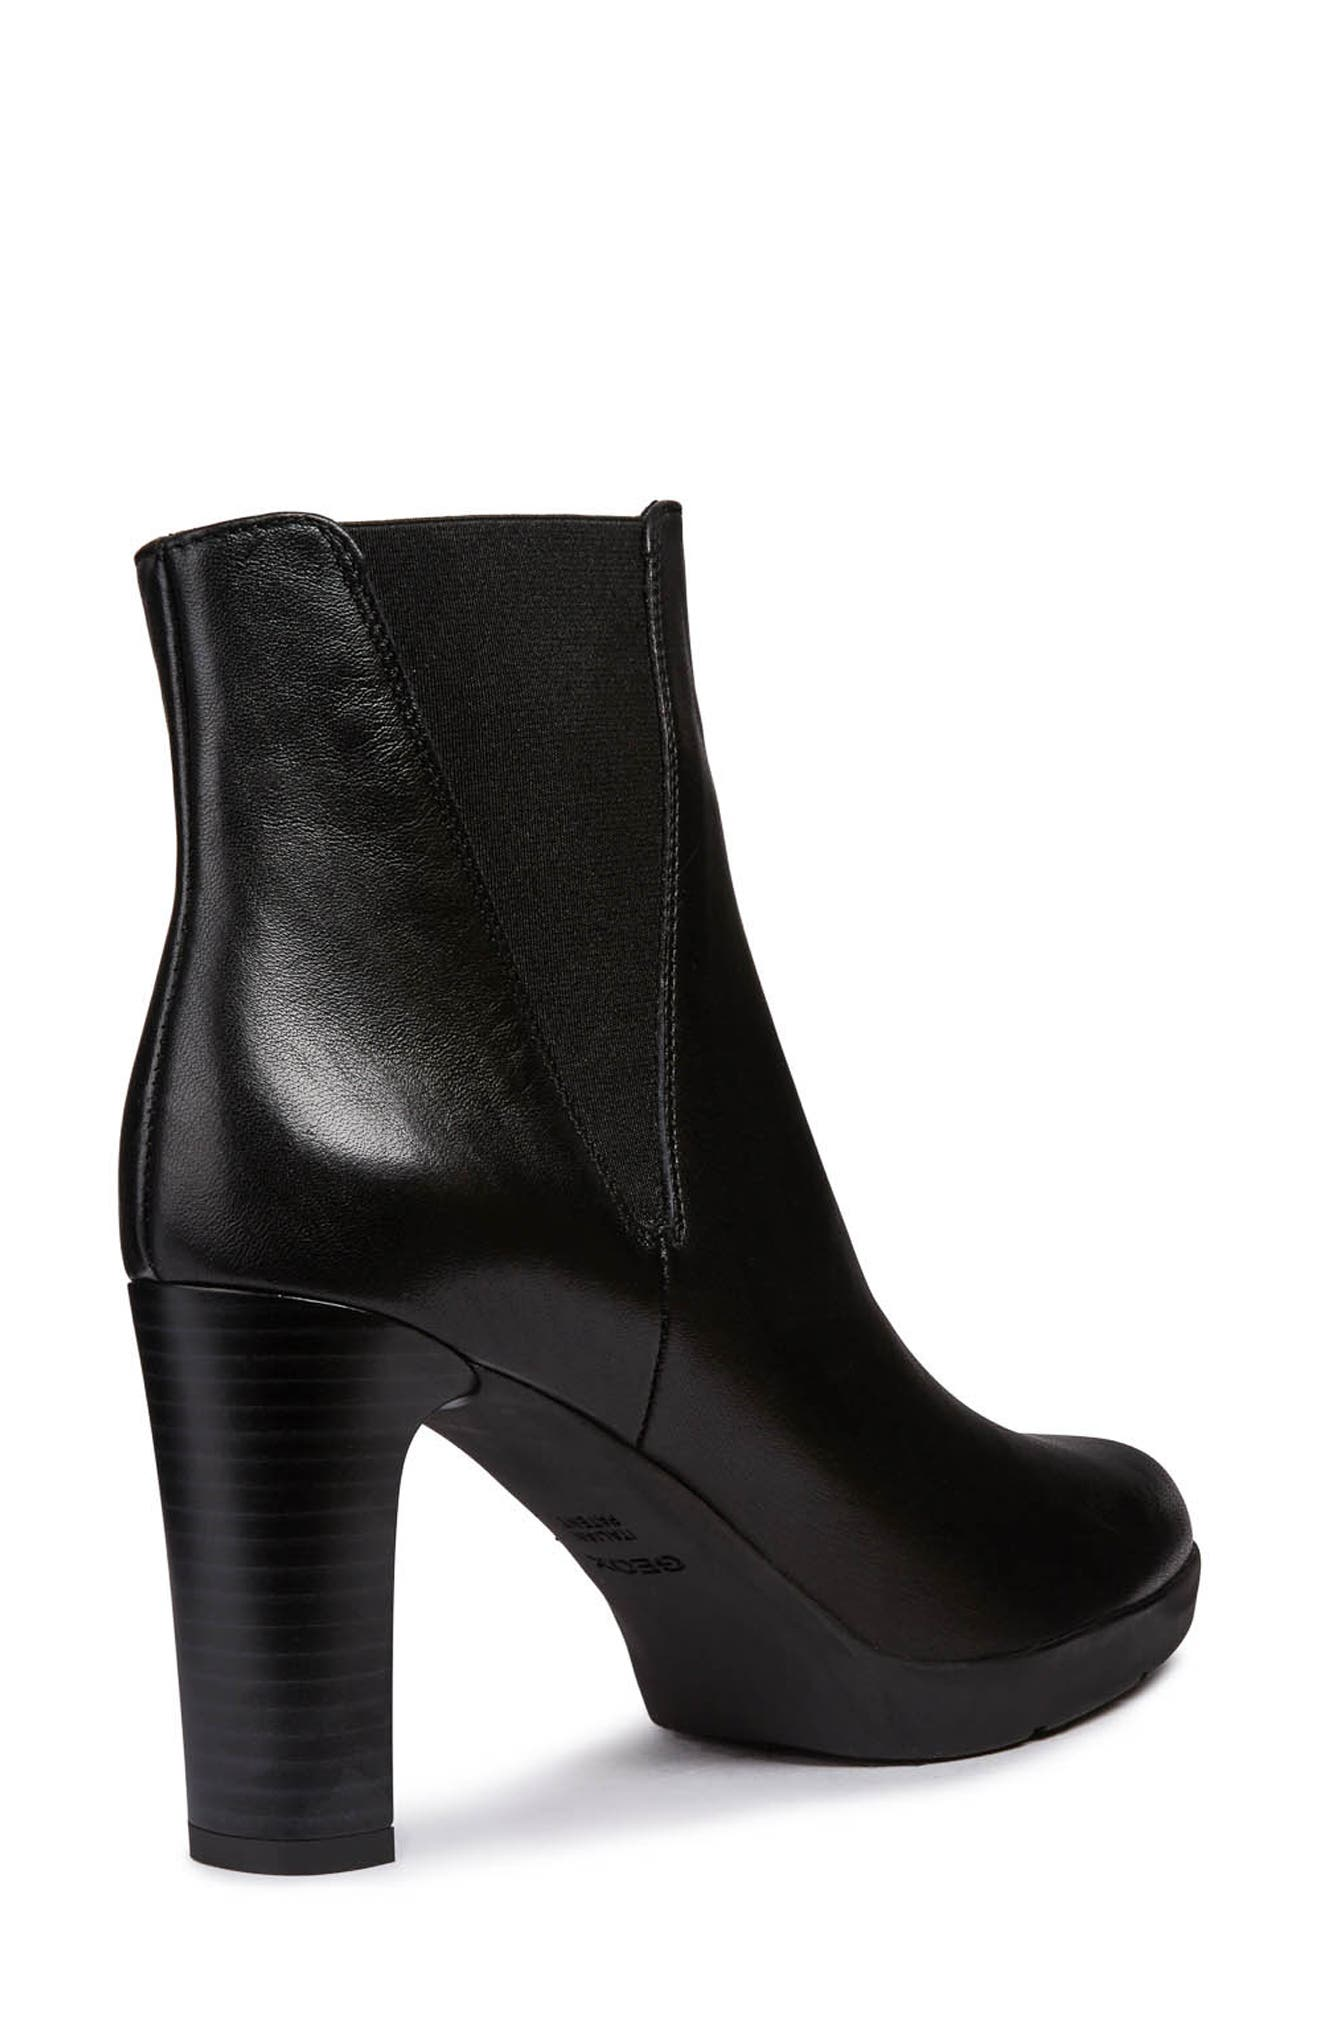 Annya Bootie,                             Alternate thumbnail 6, color,                             BLACK LEATHER